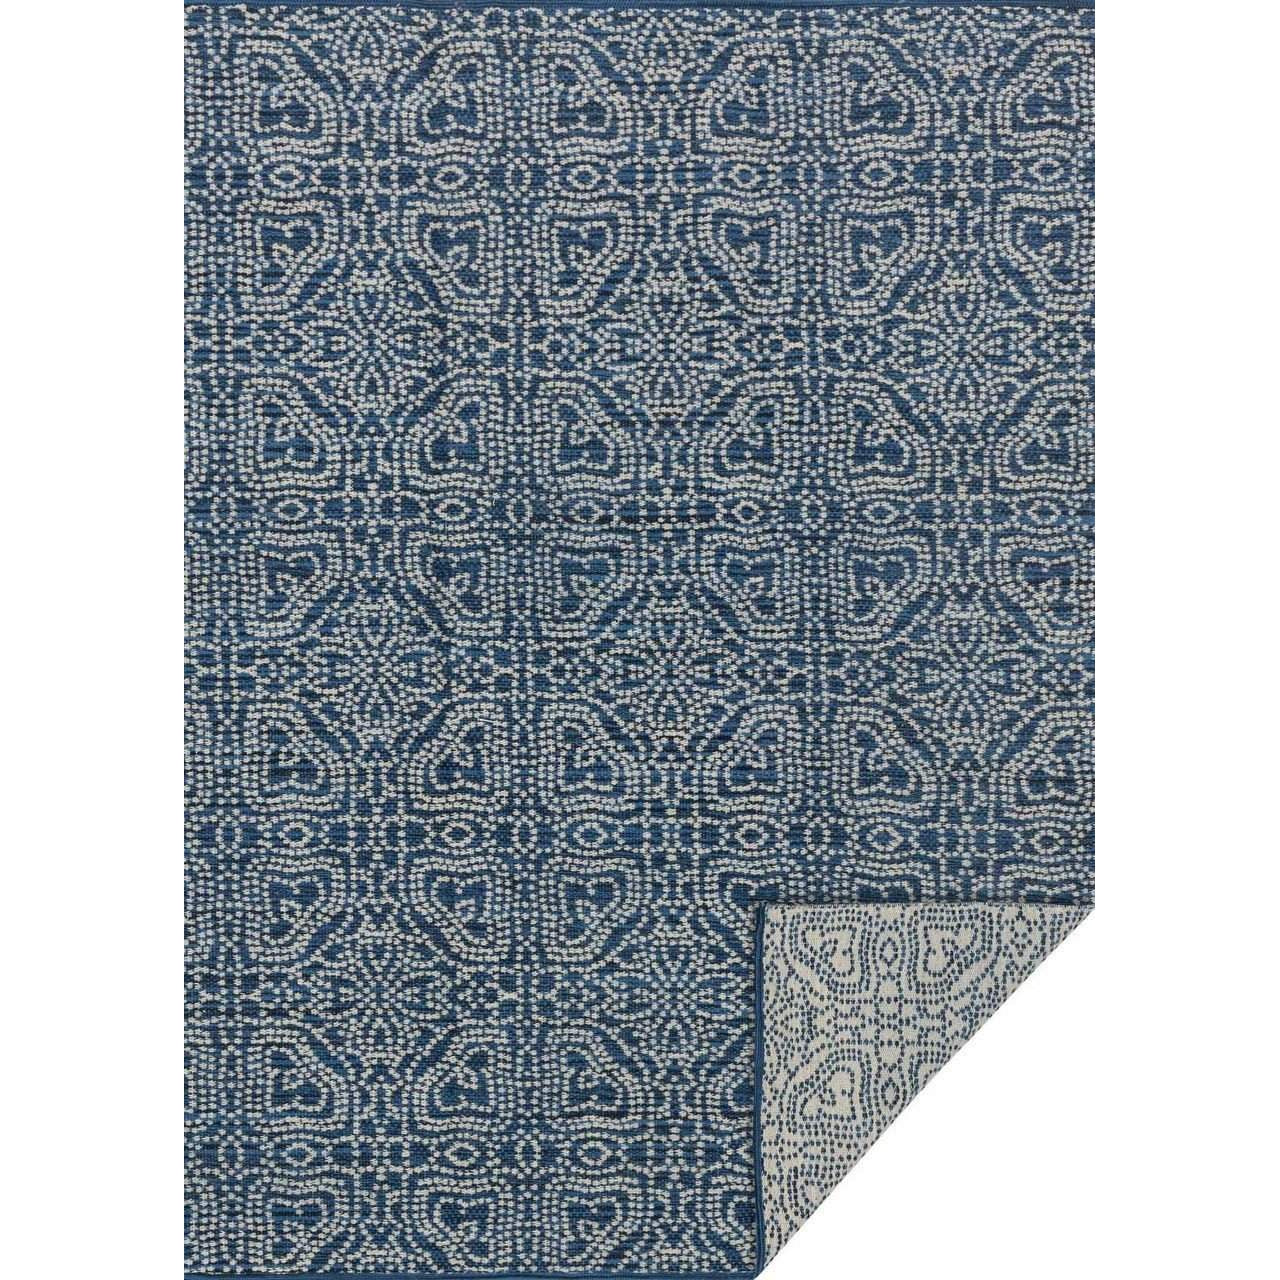 Joanna Gaines of Magnolia Home Emmie Kay Rug Collection - Navy / Cream